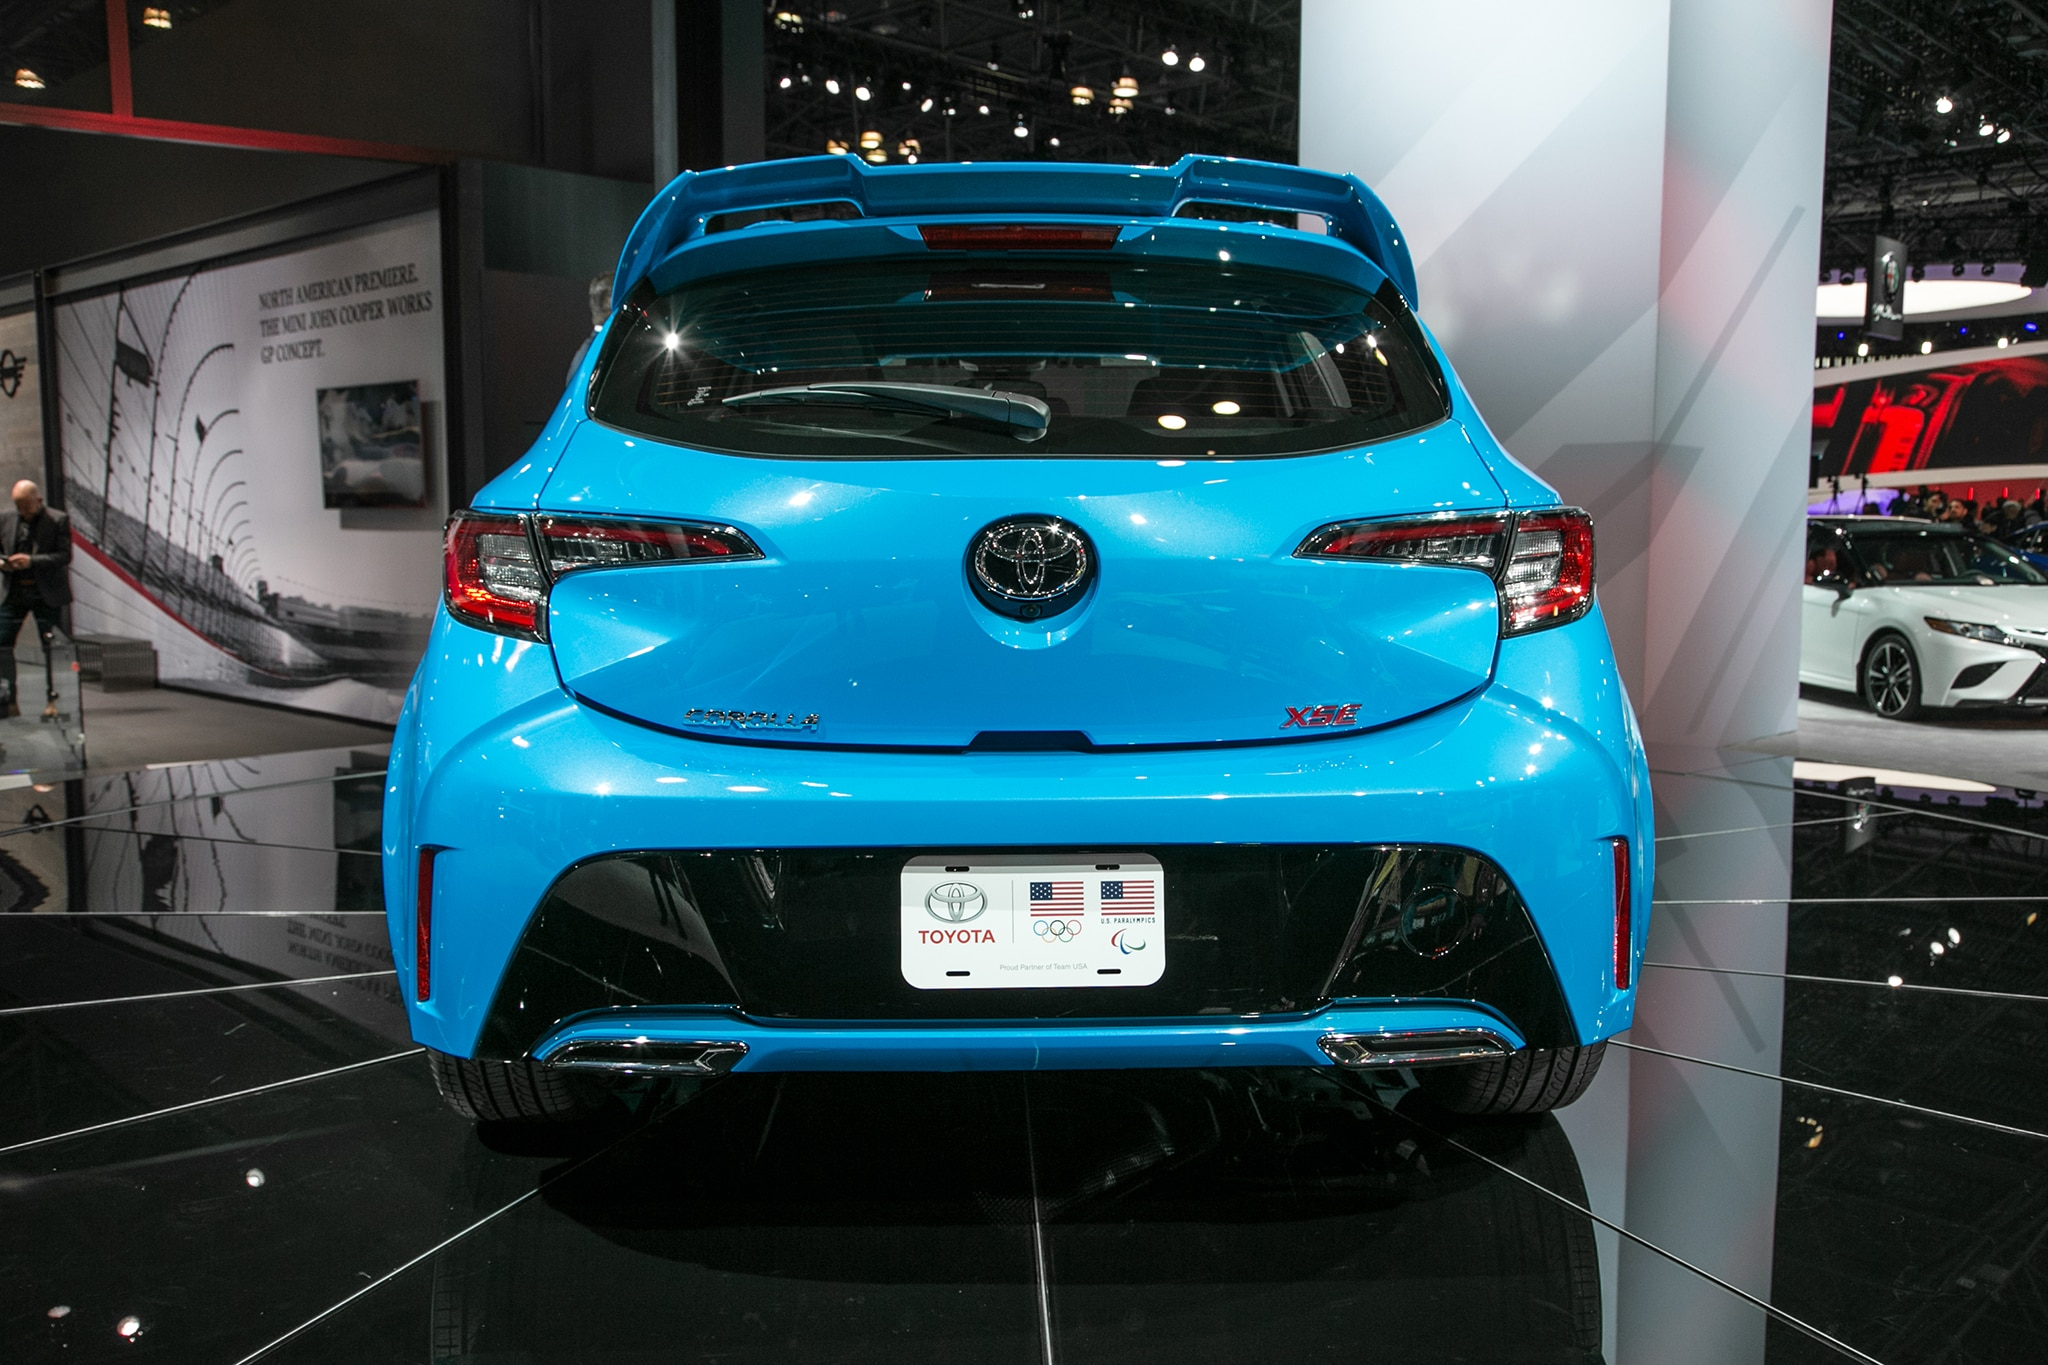 2019 Toyota Corolla Hatchback Hatches Outside Of Javits